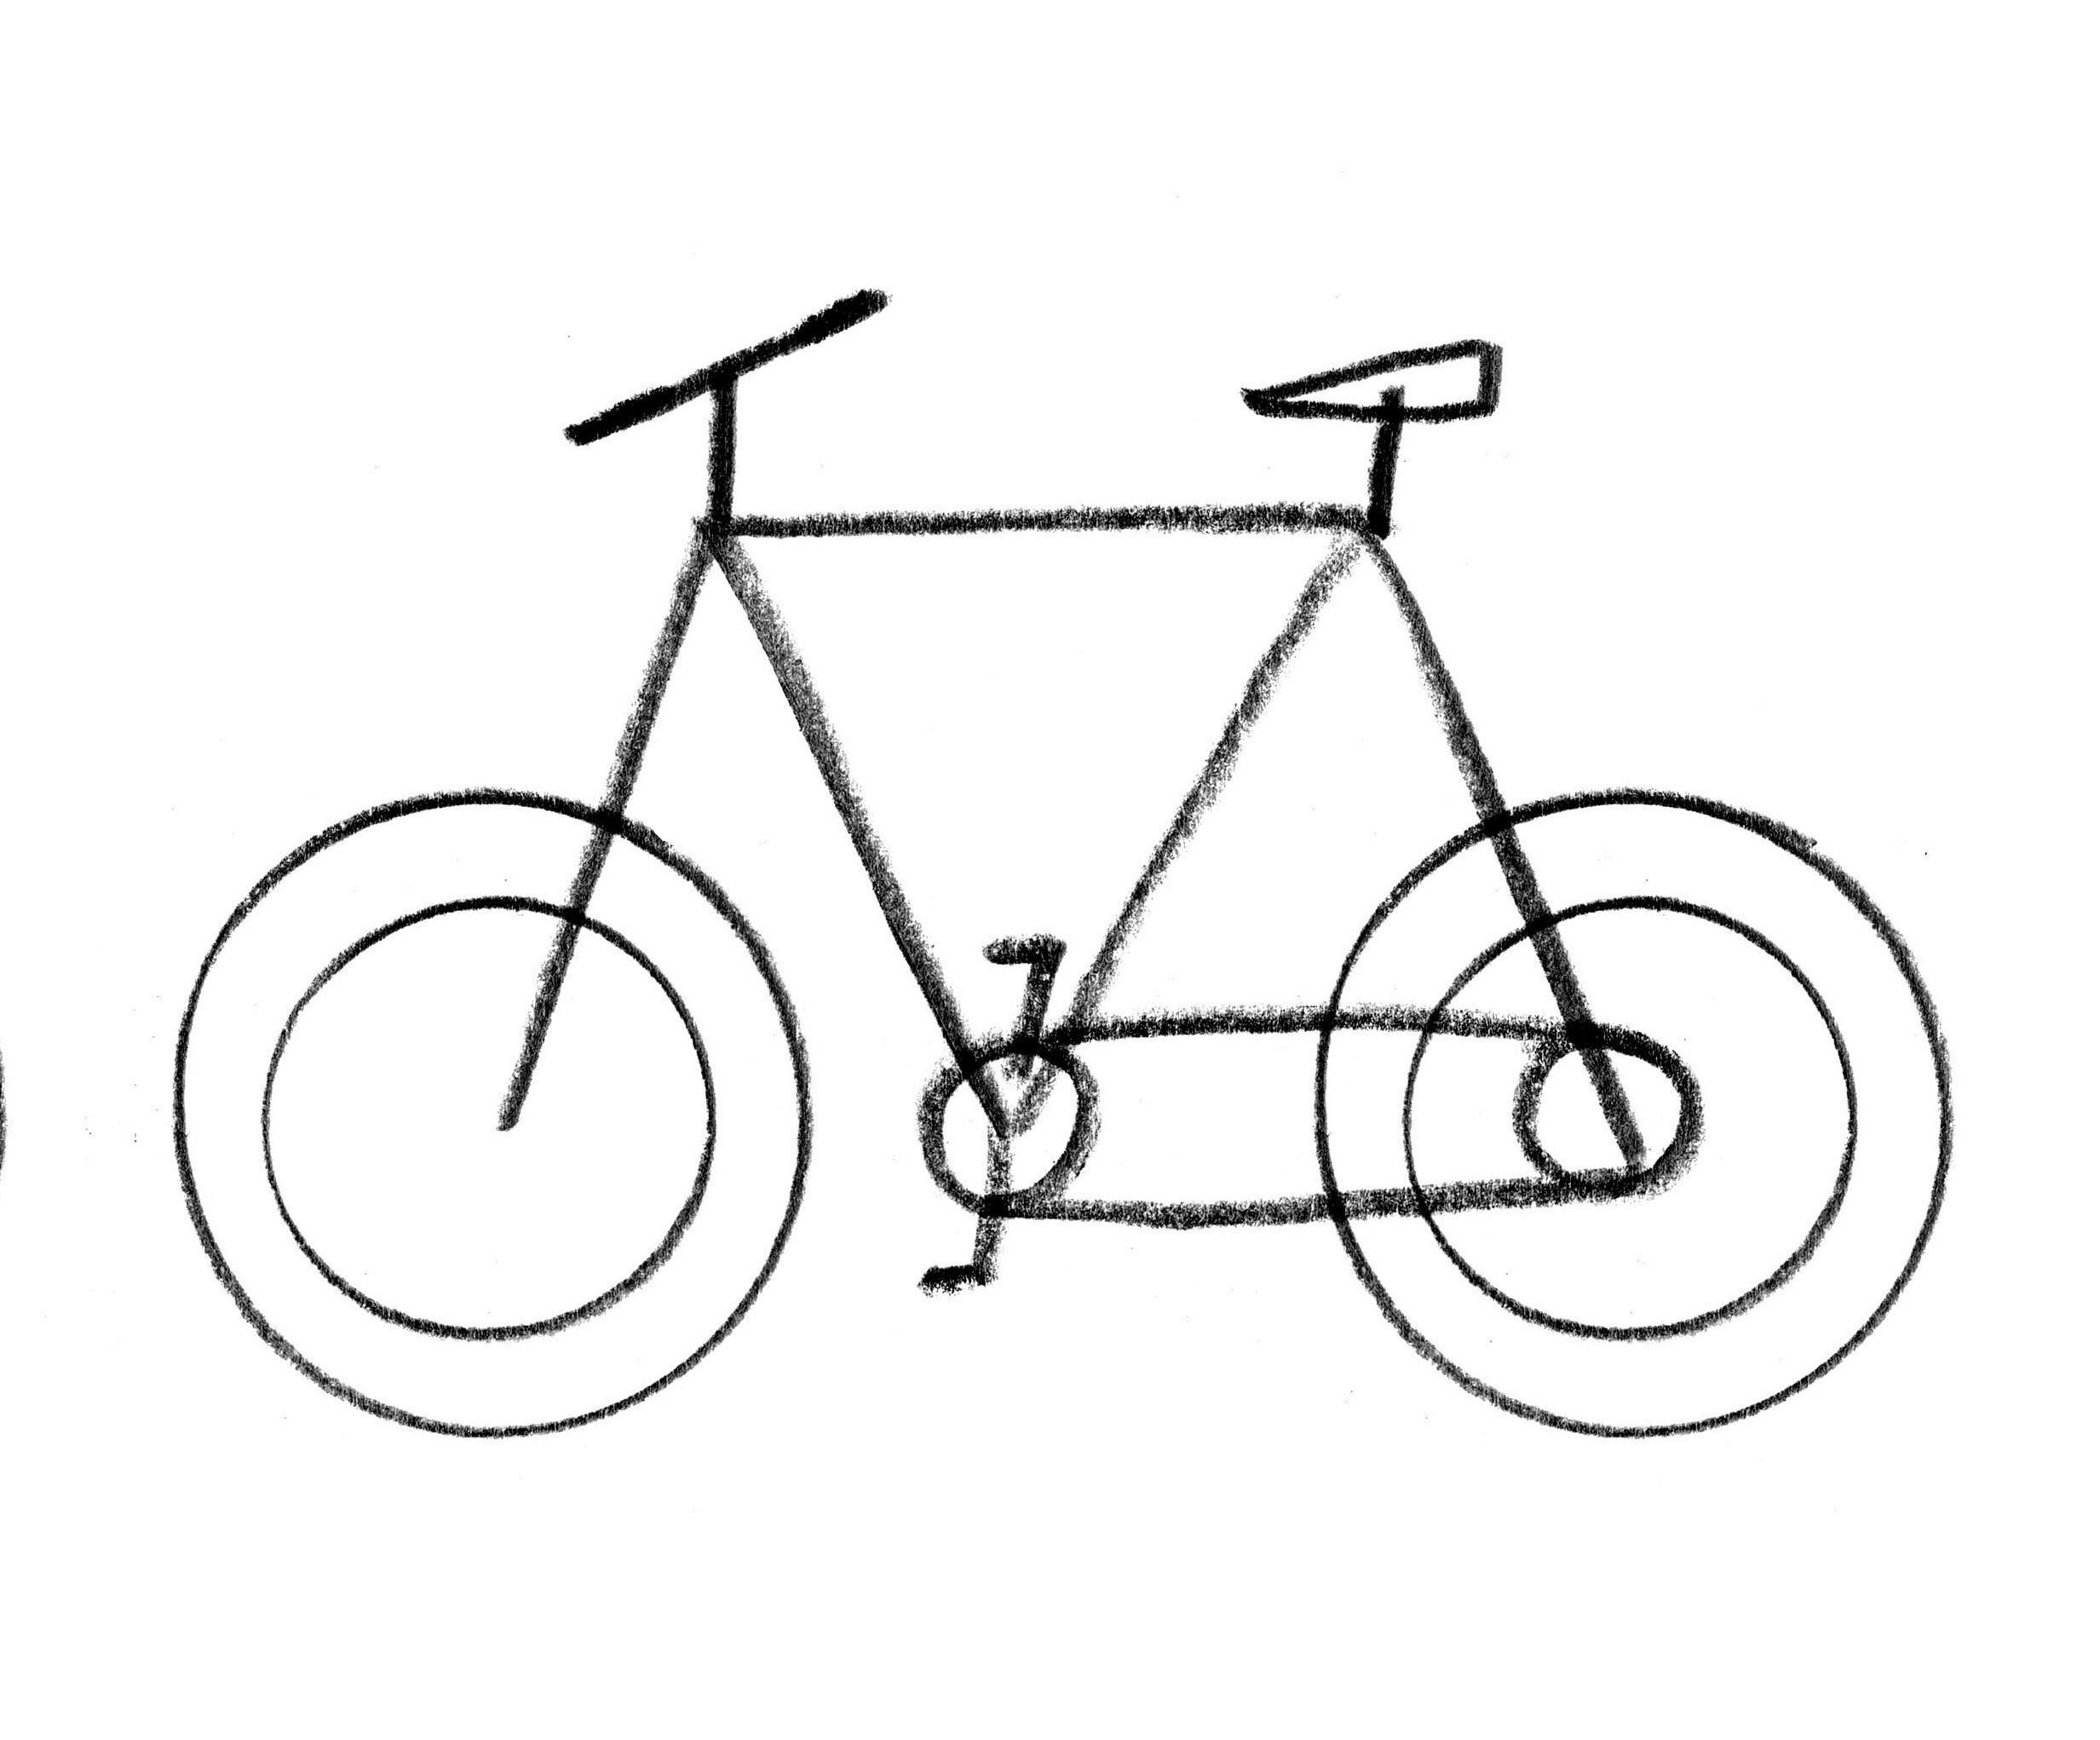 how to draw a bike step by step easy bicycle drawing at getdrawings free download how step step bike a to draw by